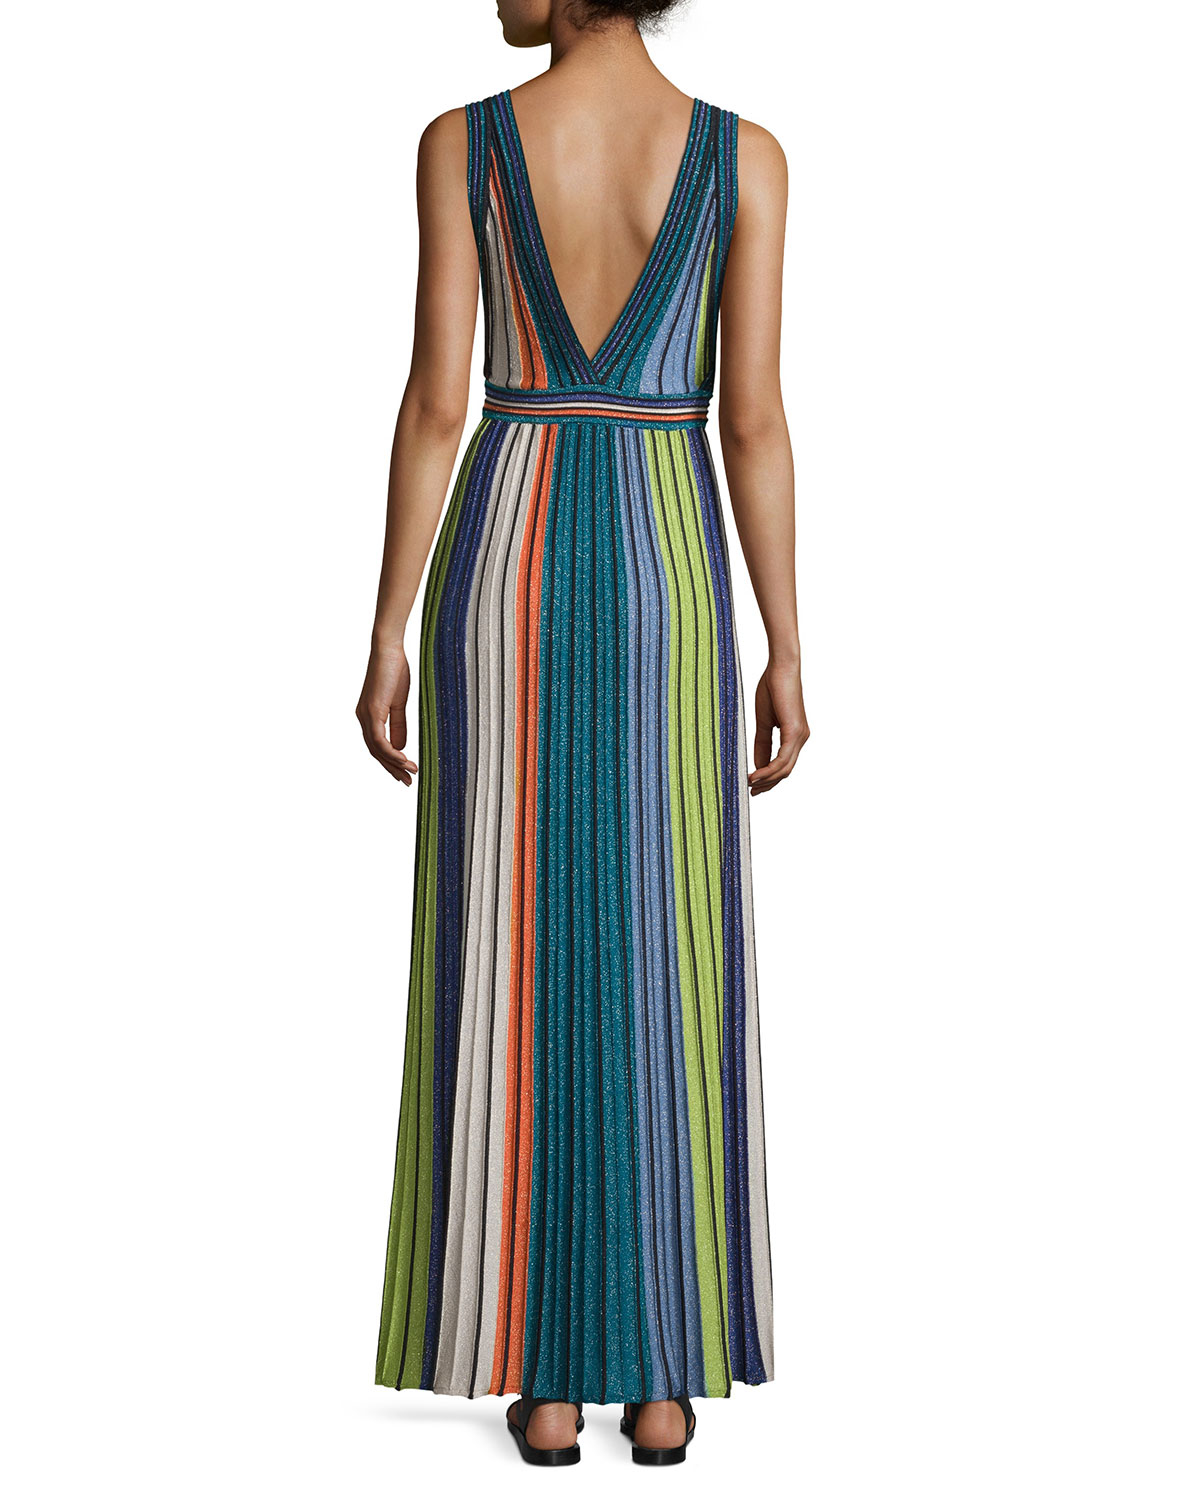 Clearance 2018 Womens Metallic Striped Maxi Dress Missoni Free Shipping Find Great Free Shipping Shopping Online In China For Sale Really Cheap Shoes Online 2zQW9rCzu